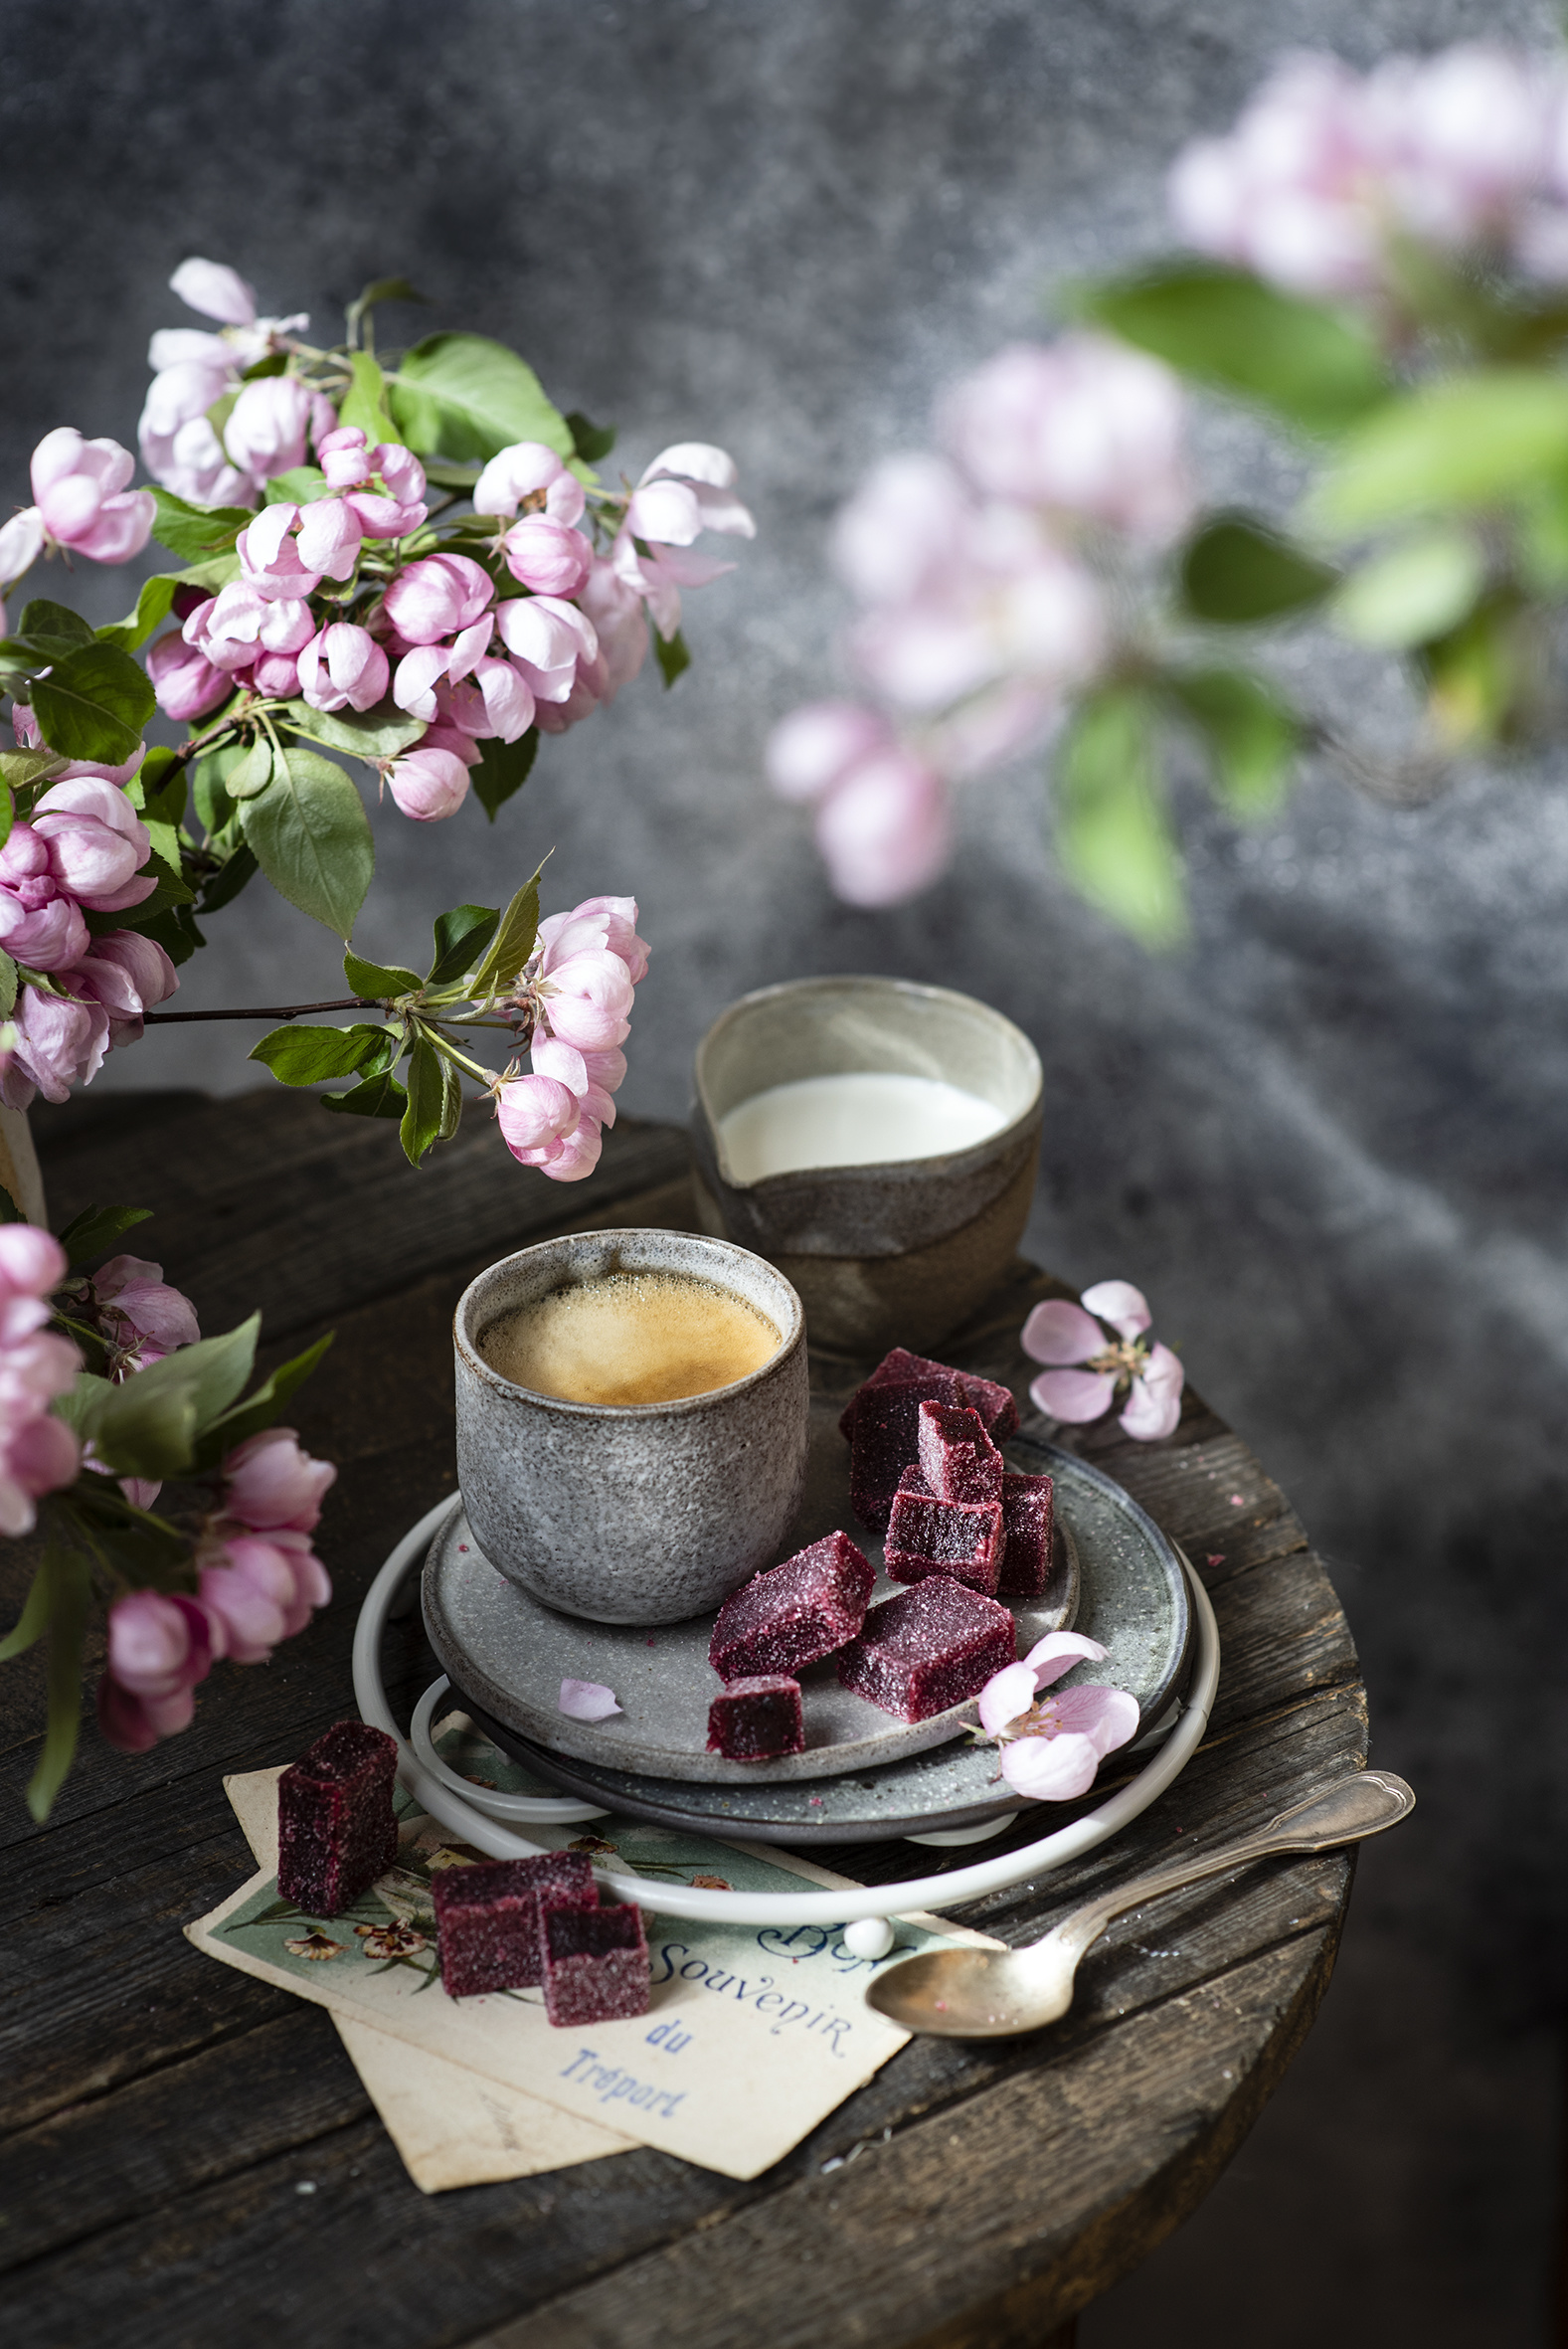 Picture Milk Coffee Marmalade Cappuccino Mug Food Branches Flowering trees  for Mobile phone